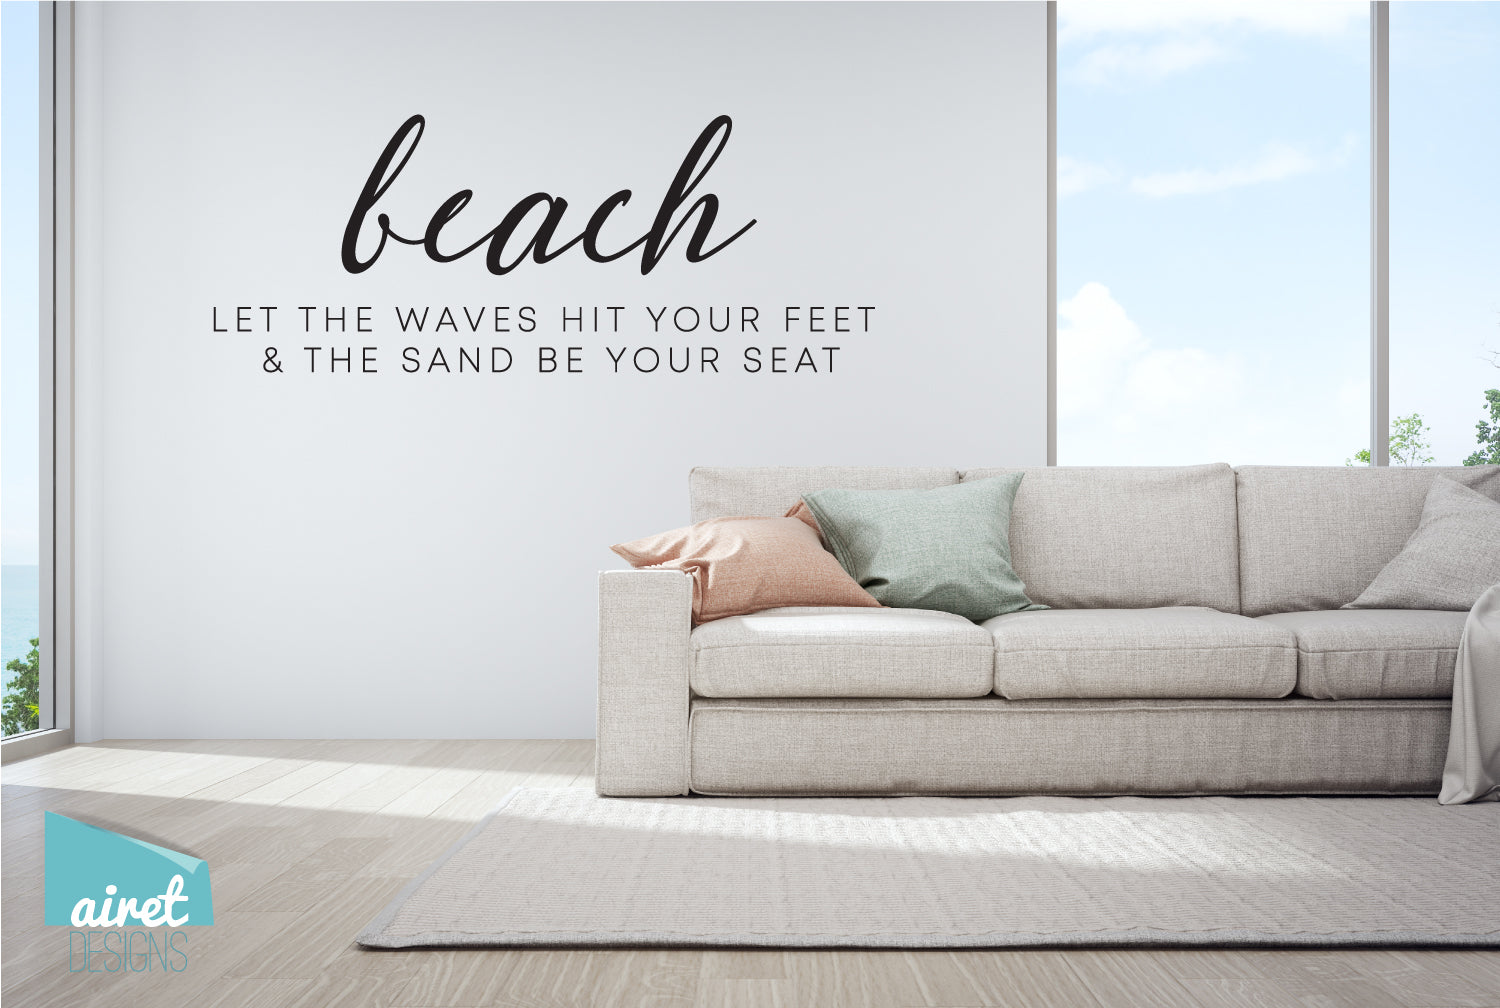 Beach - Let the waves hit your feet & the sand be your seat - Vinyl Decal Home Ocean Holiday Tropical Low Tech Vacation Beach House Cabin v2